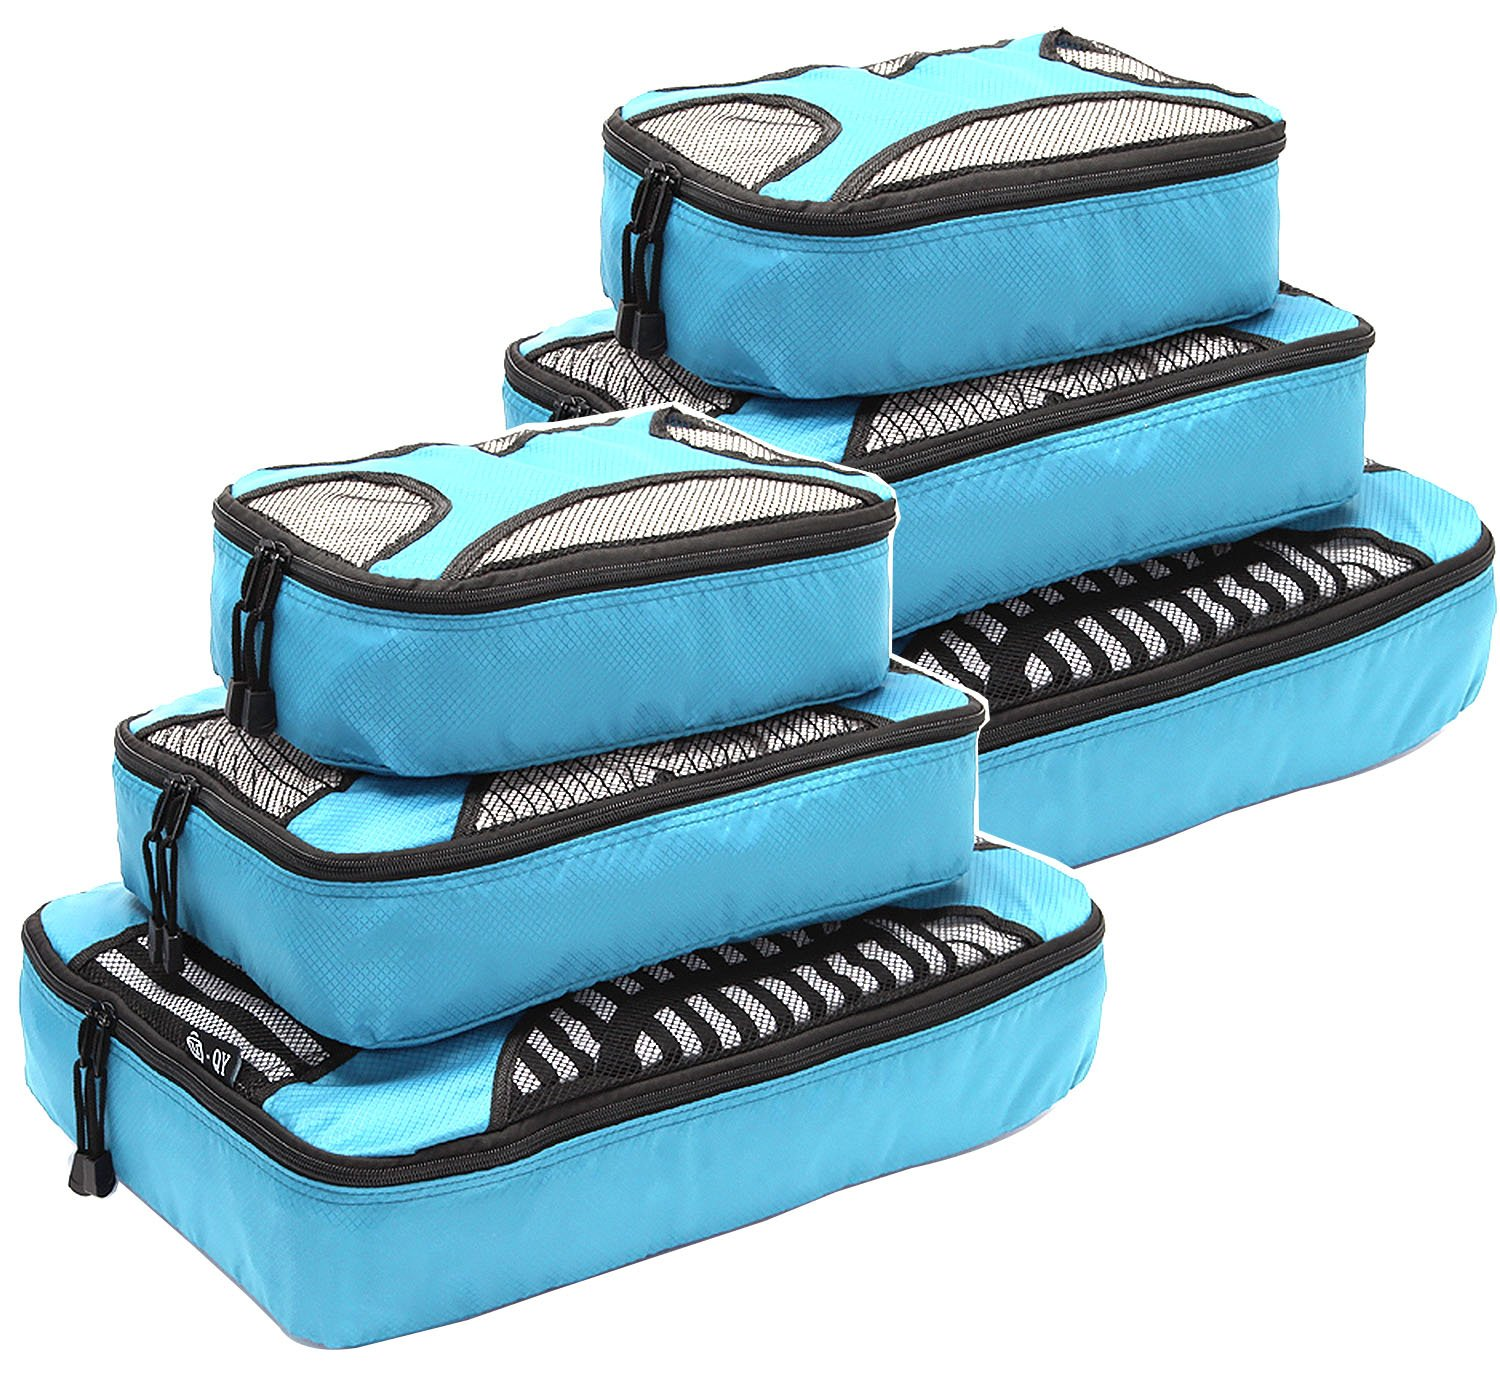 Travel Packing Organizers - Clothes Cubes Shoe Bags Laundry Pouches For Suitcase Luggage, Storage Organizer 6 Set Color Blue